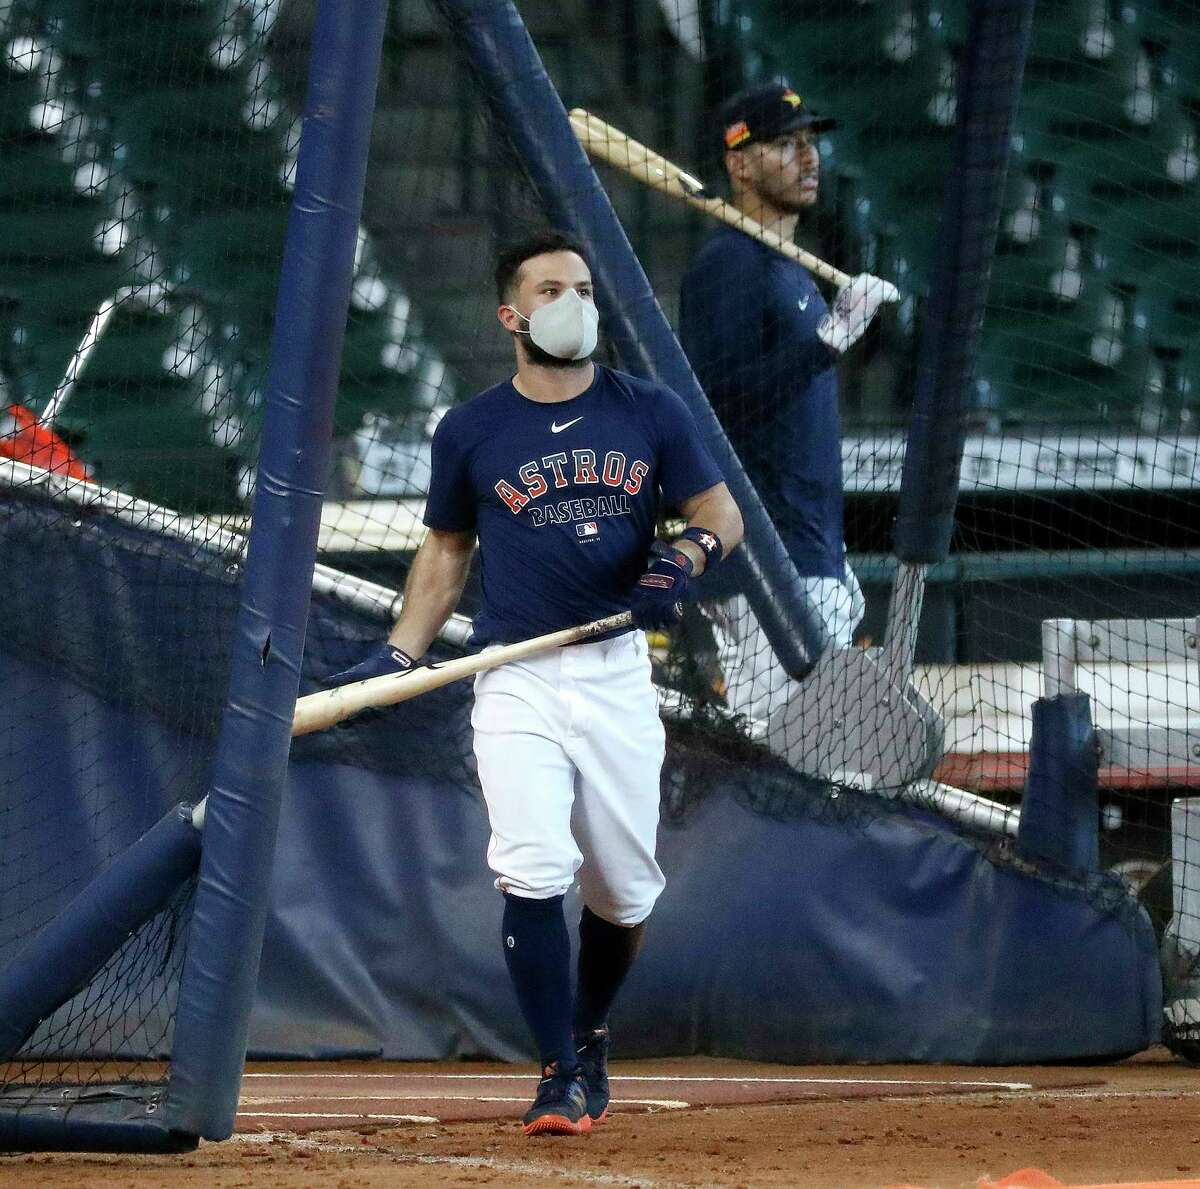 Houston Astros Jose Altuve wears a face mask as he took batting practice in the cage during the Astros summer camp at Minute Maid Park, Saturday, July 18, 2020, in Houston.